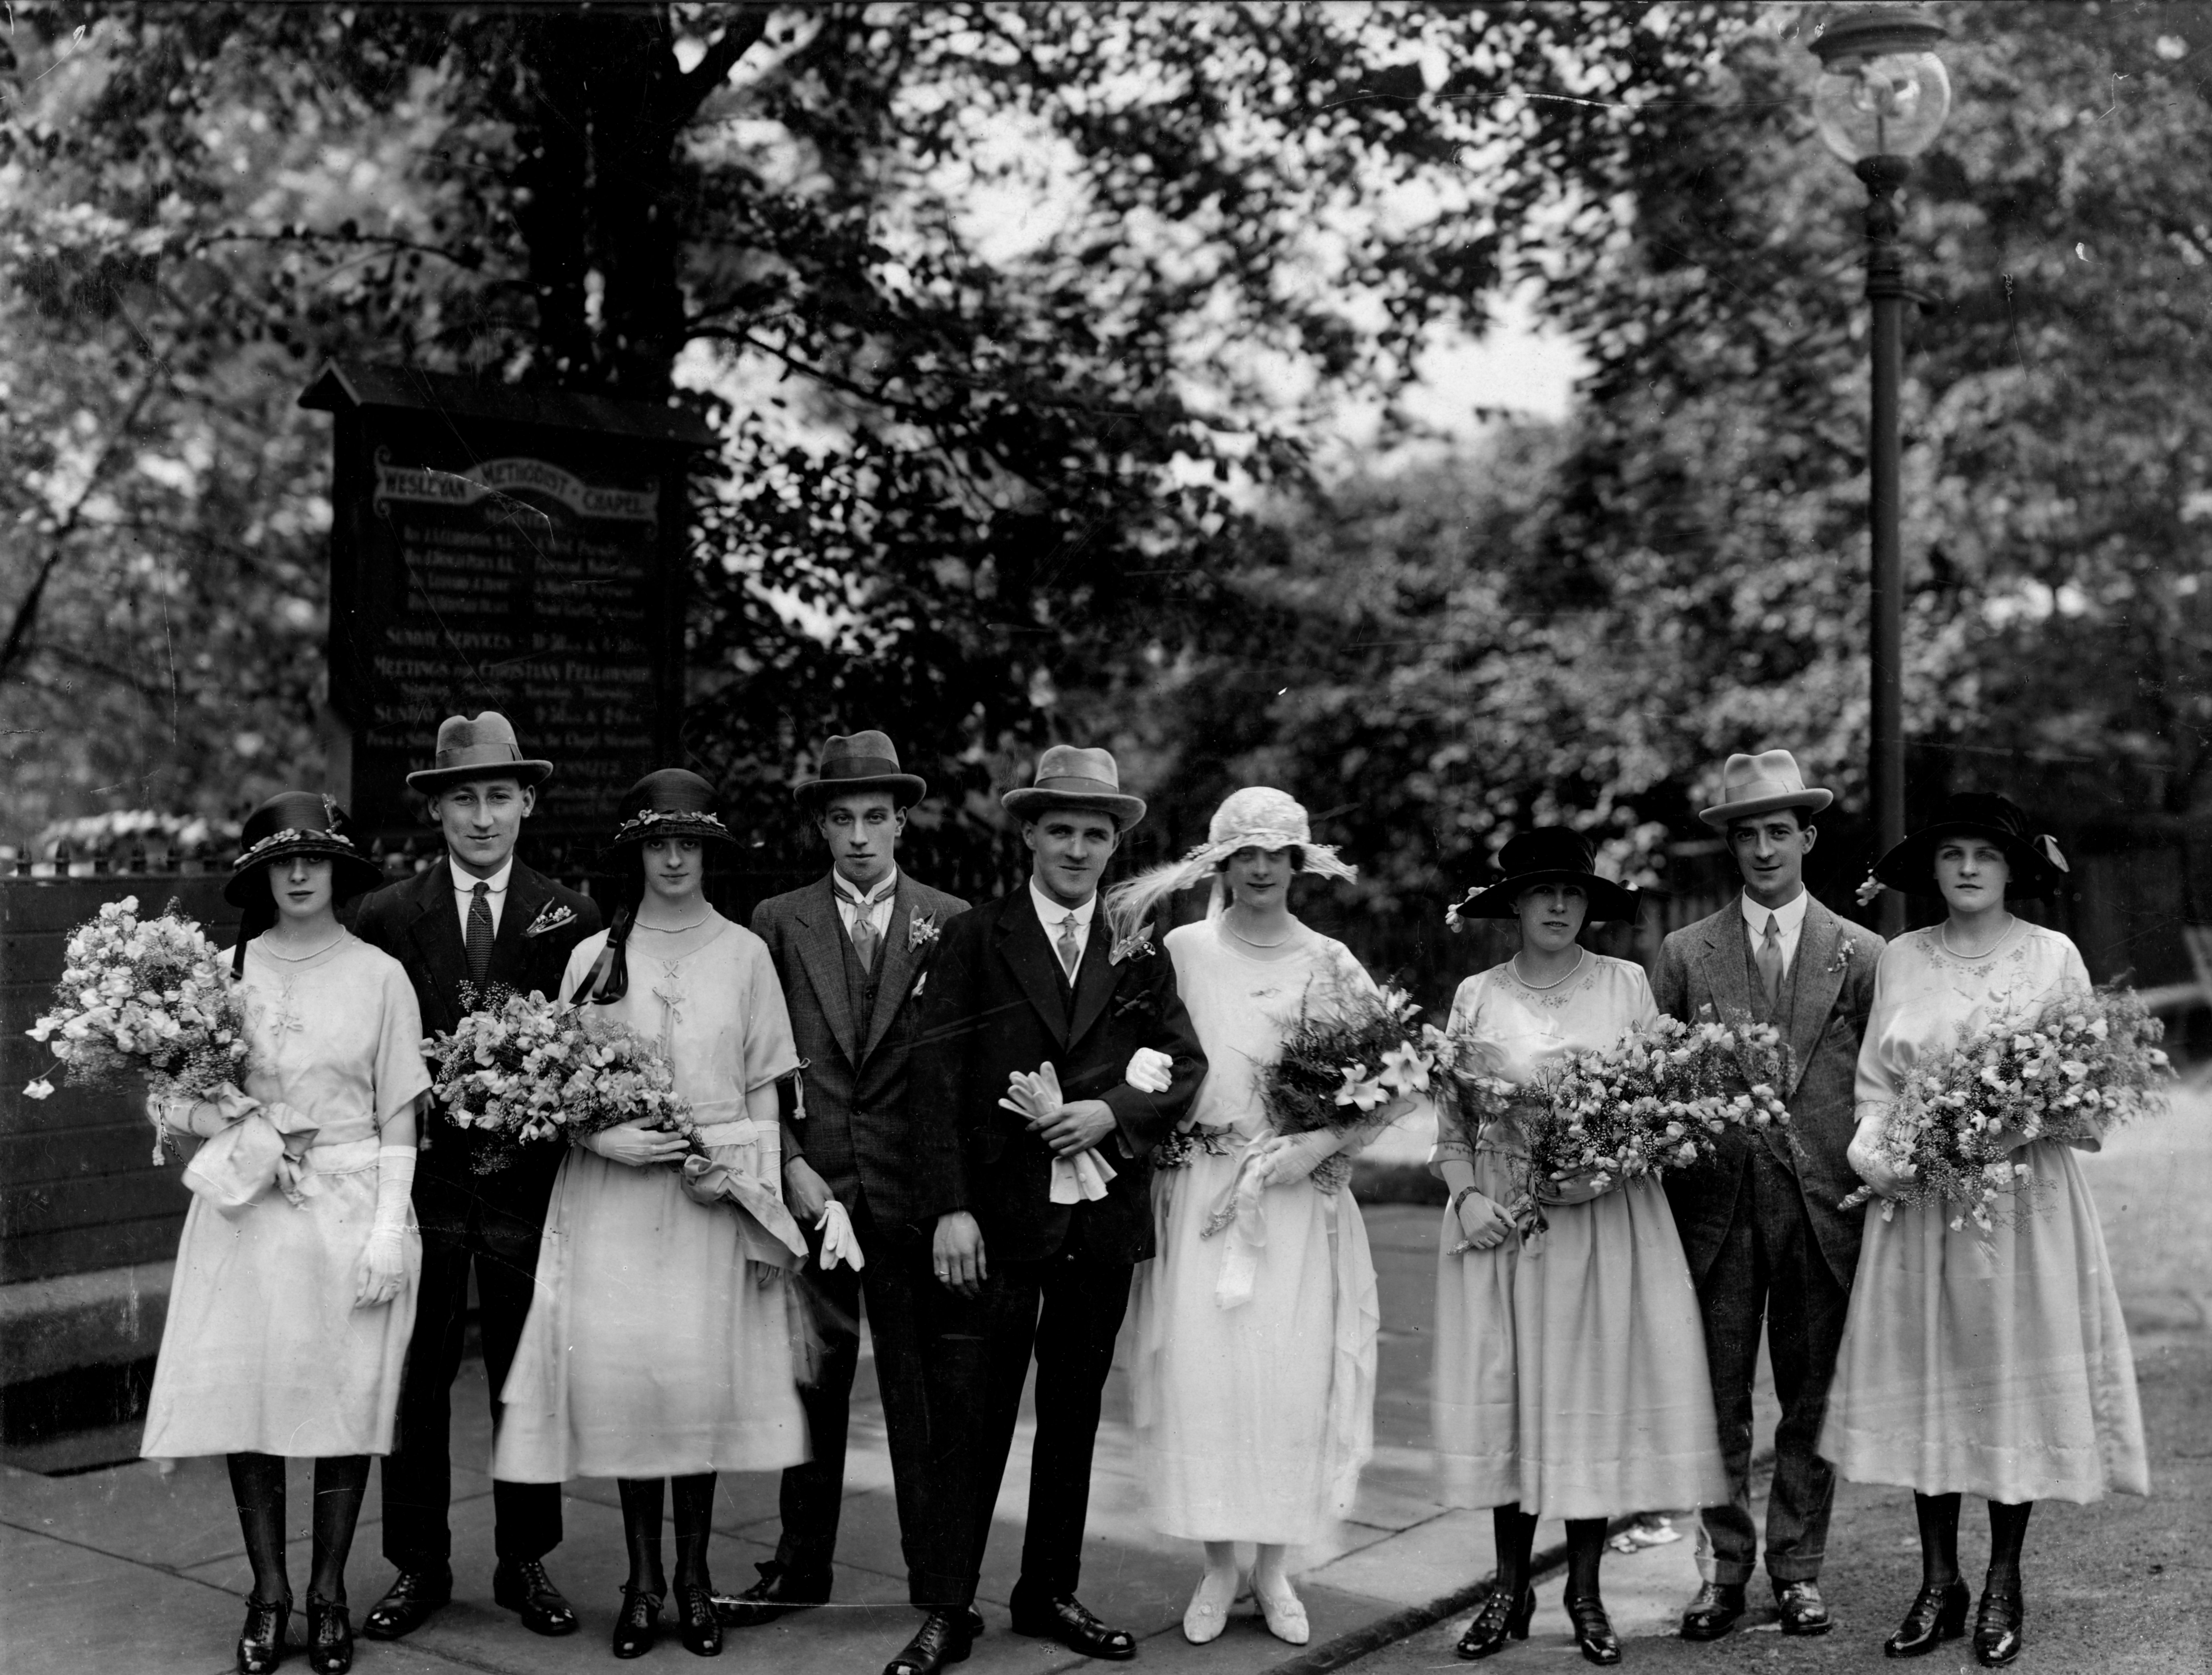 John Henry Bagnall marries Dorothy Townsend